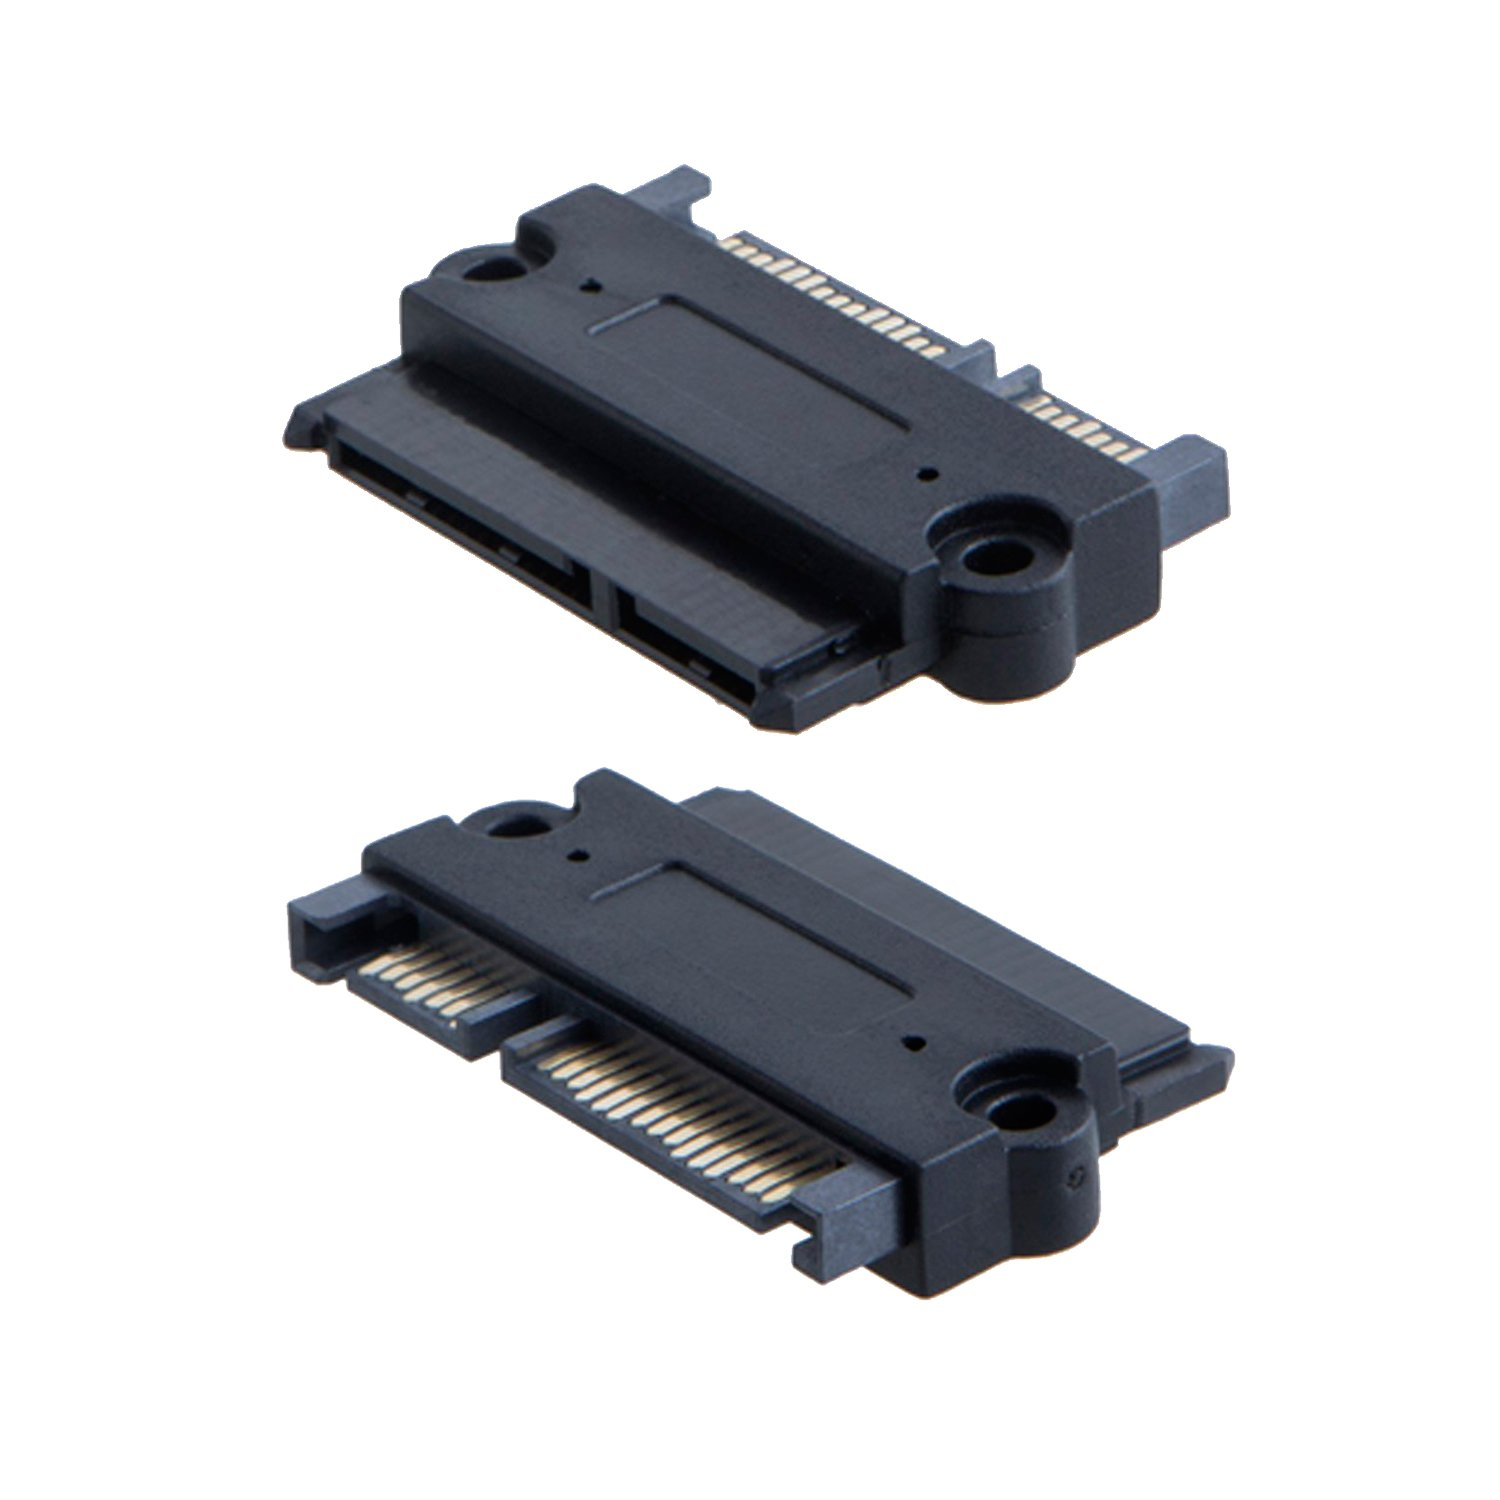 CableCreation 2-Pack SATA 22Pin (7+15 Pin) Male to SATA 22 Pin (7+15Pin) Female Adapter Convertor, Sata Male-Female Adapter